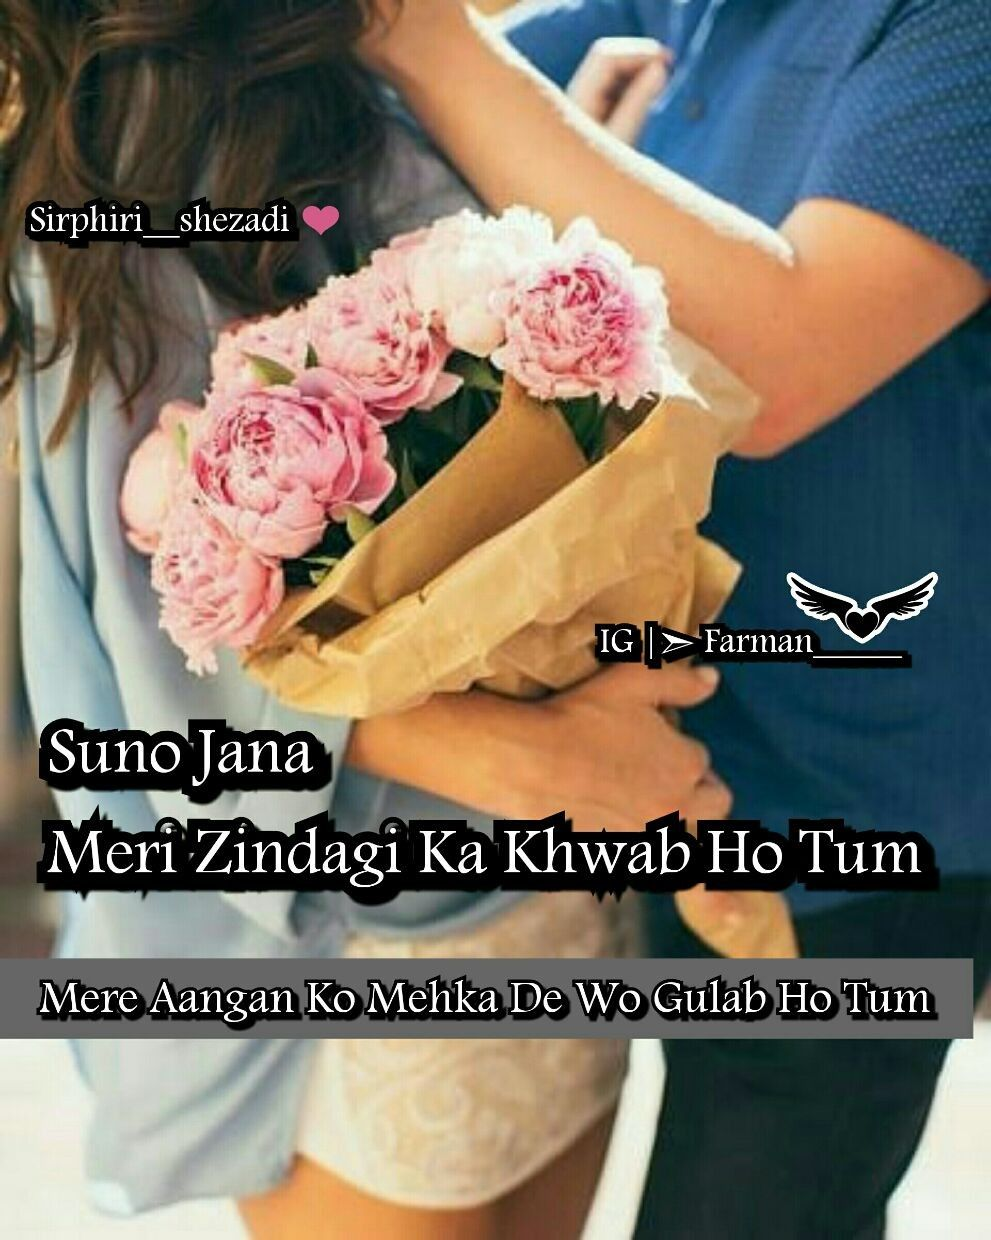 Happy Rose Day Romantic Couple Quotes Couple Quotes Relationship Quotes Couple romantic rose day images for